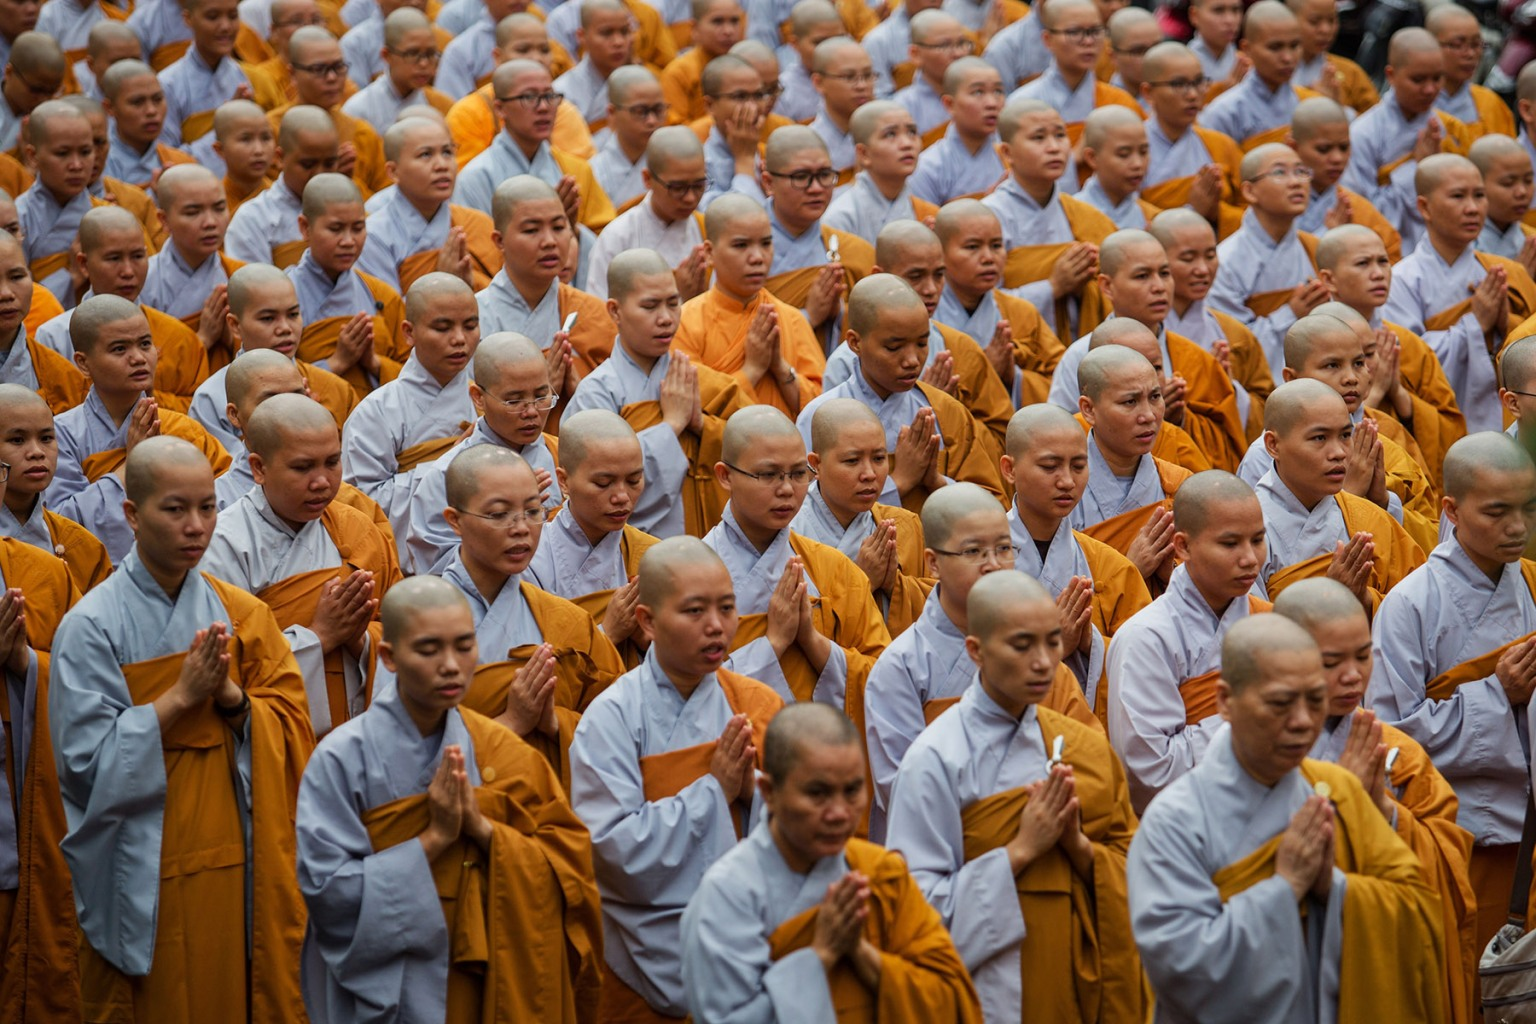 Buddhist monks pray for President Tran Dai Quang, who died Sept. 21 at age 61, at the Viet Nam Quoc Tu Pagoda in Ho Chi Minh City on Sept. 23.  KAO NGUYEN/AFP/Getty Images